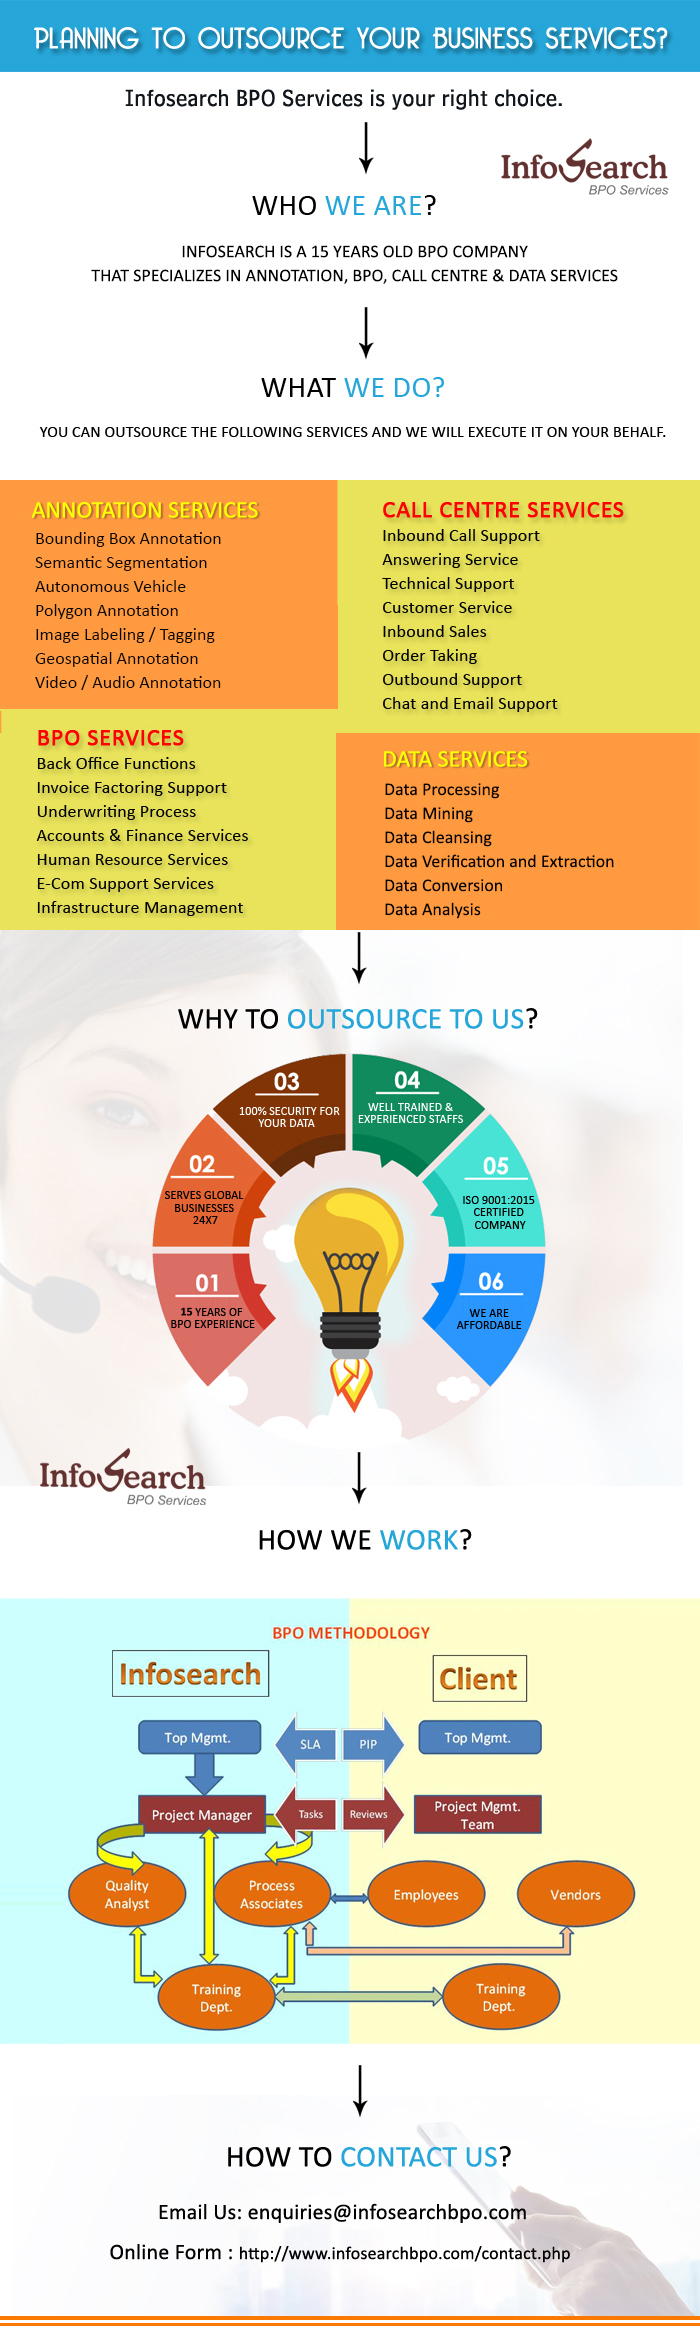 Outsource business services to Infosearch